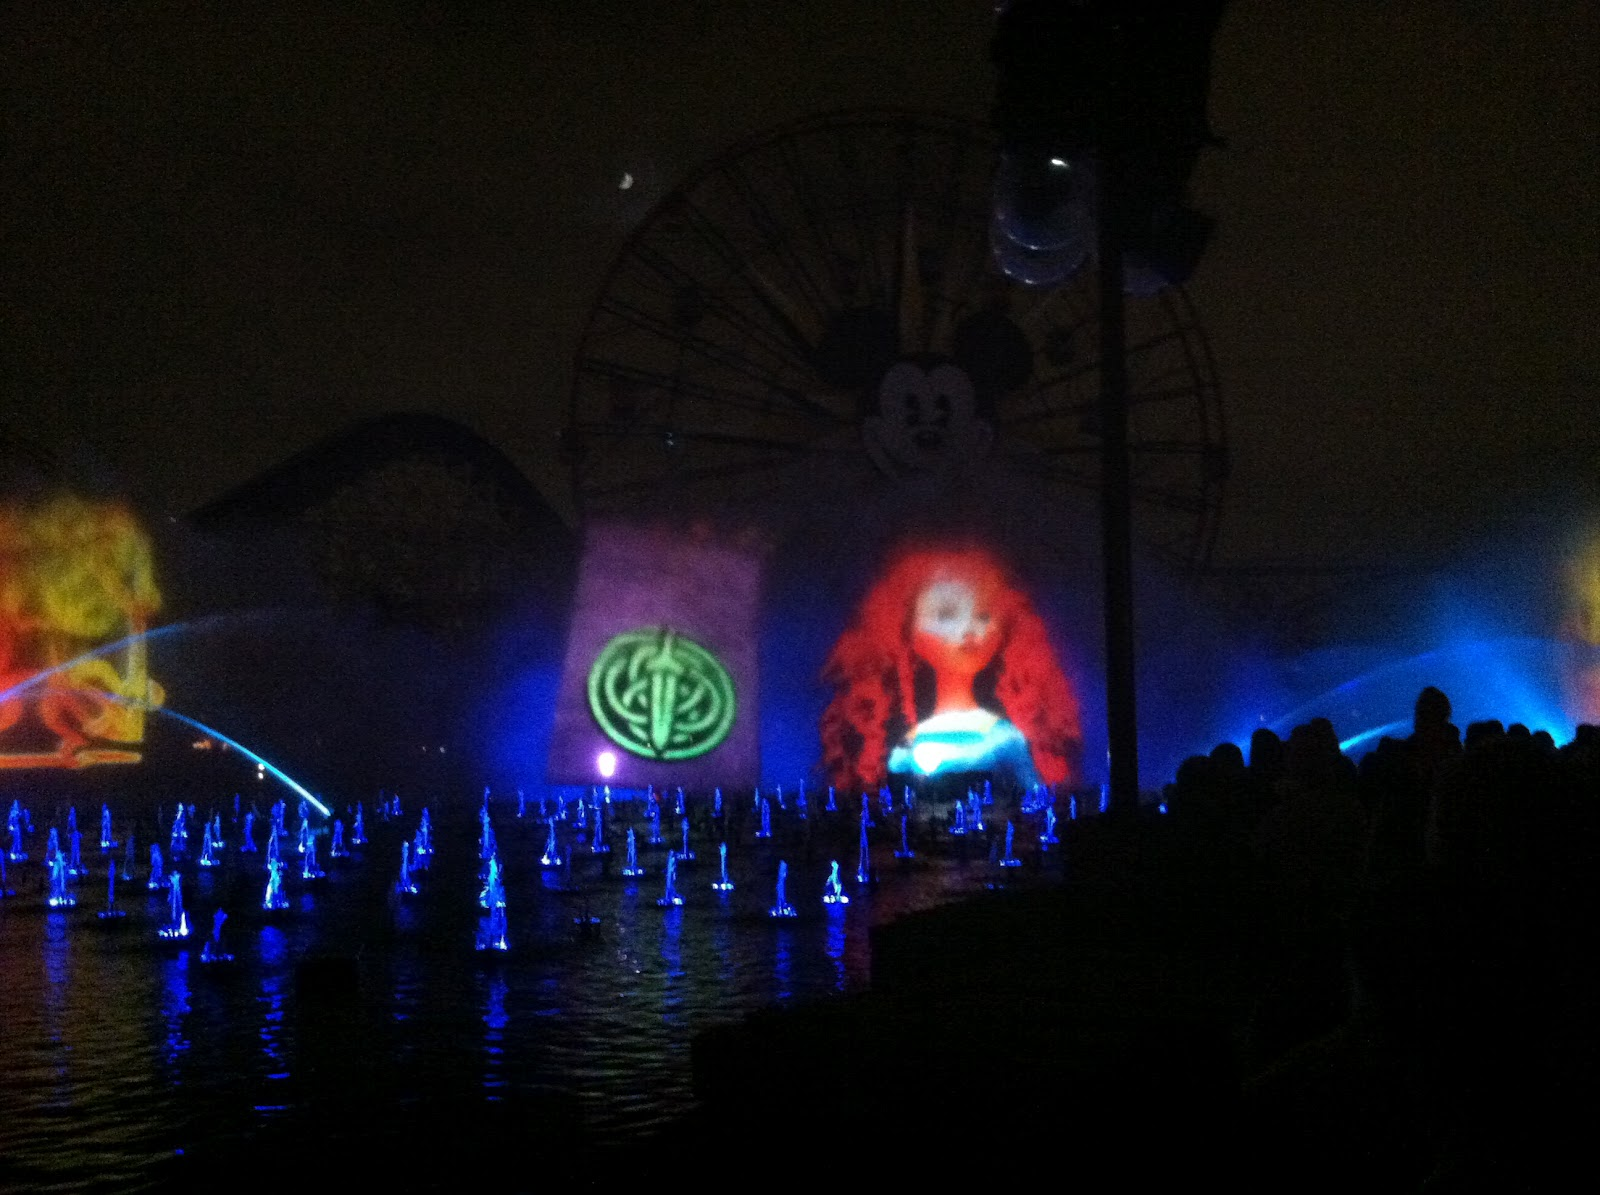 Merida joins the World of Color